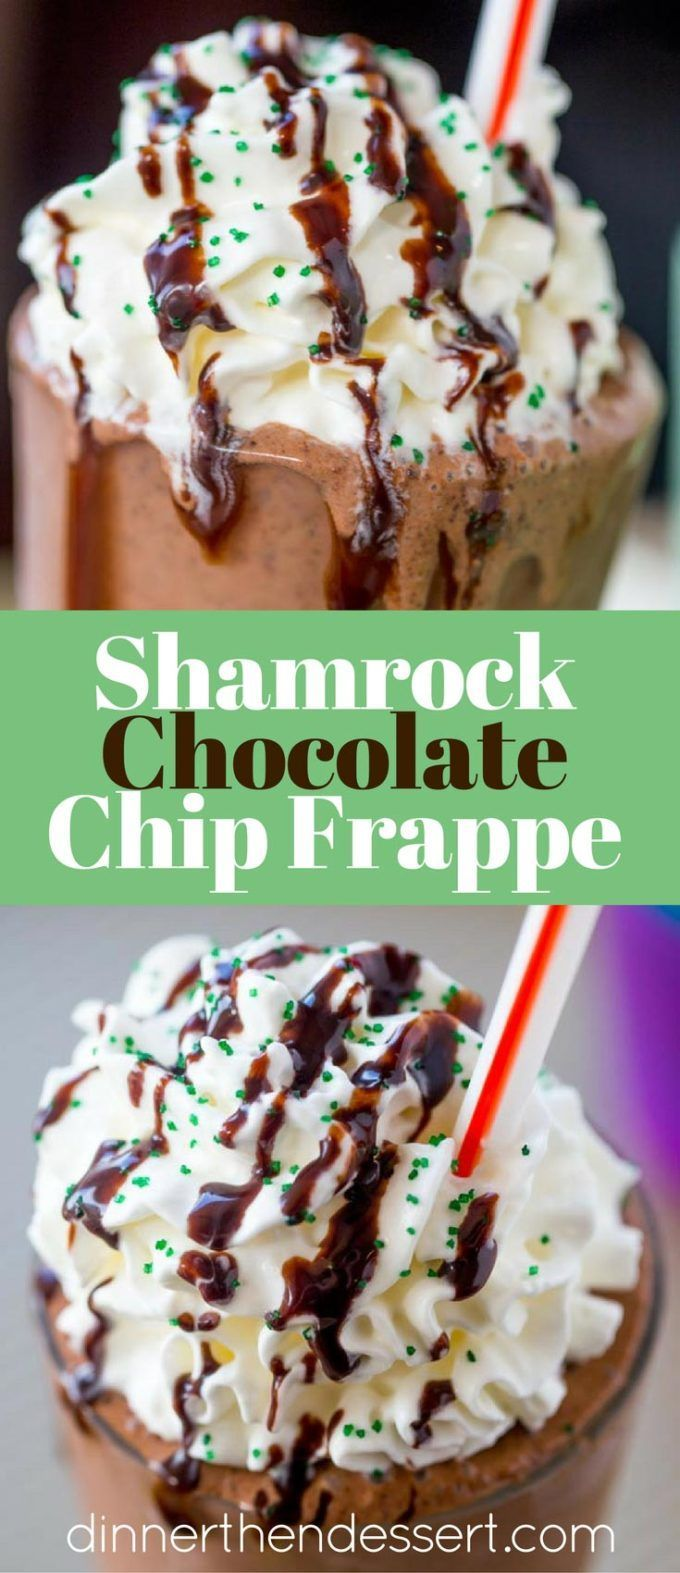 McDonald's Shamrock Chocolate Chip Frappe has a mocha caramel base with mint and chocolate chips blended in for a mint mocha frozen treat you'll love topped with chocolate sauce and whipped cream.